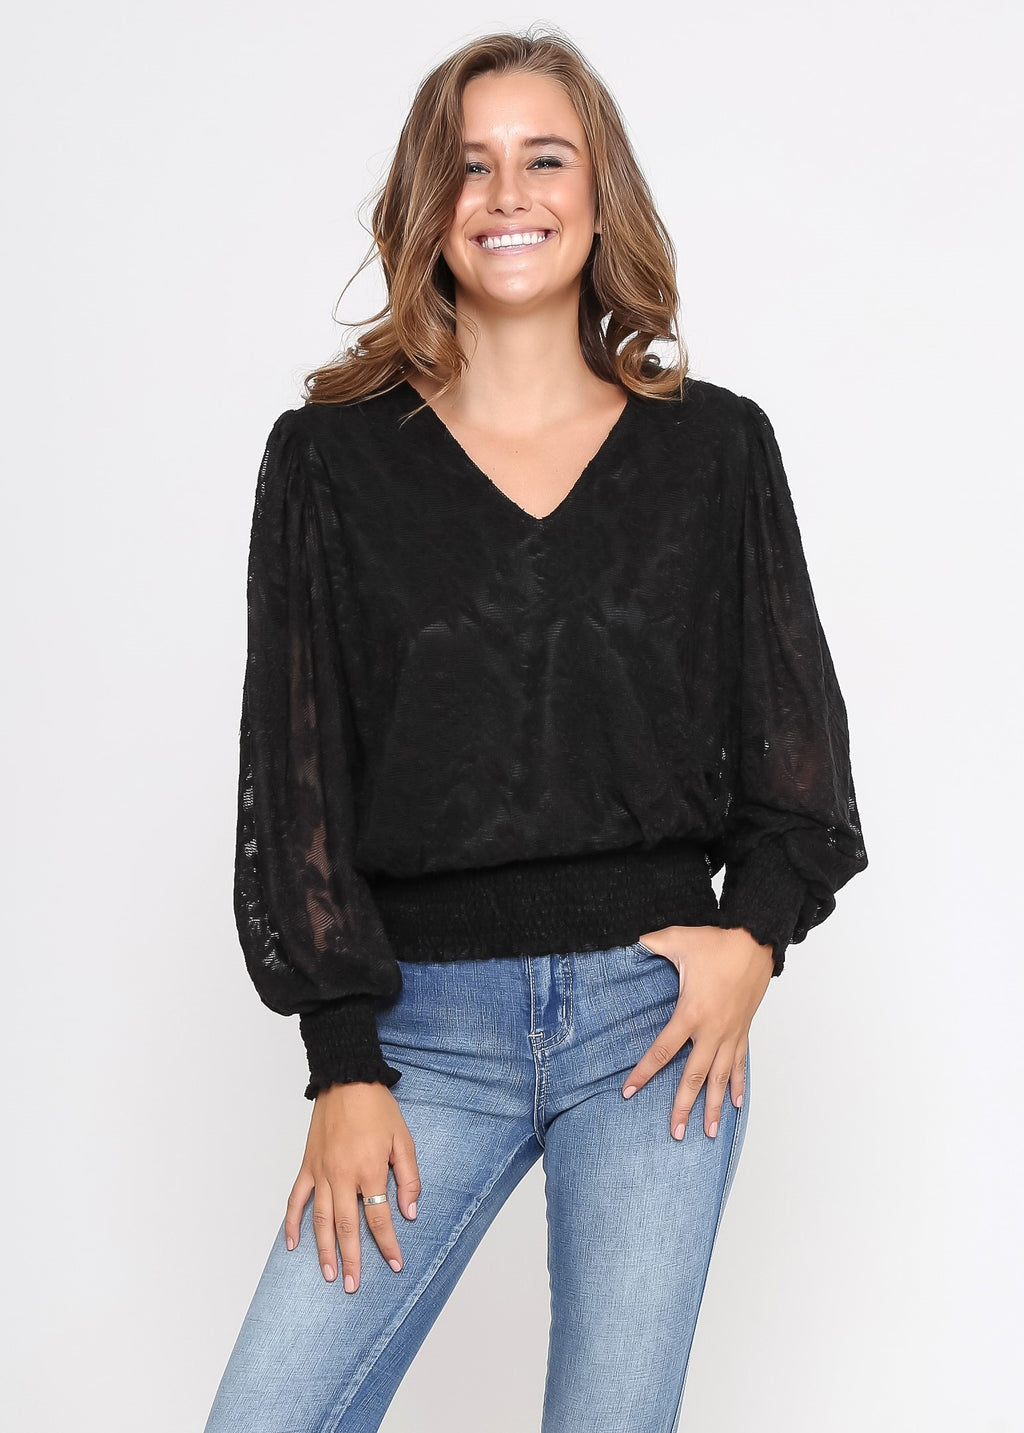 JESICA TOP - BLACK LACE